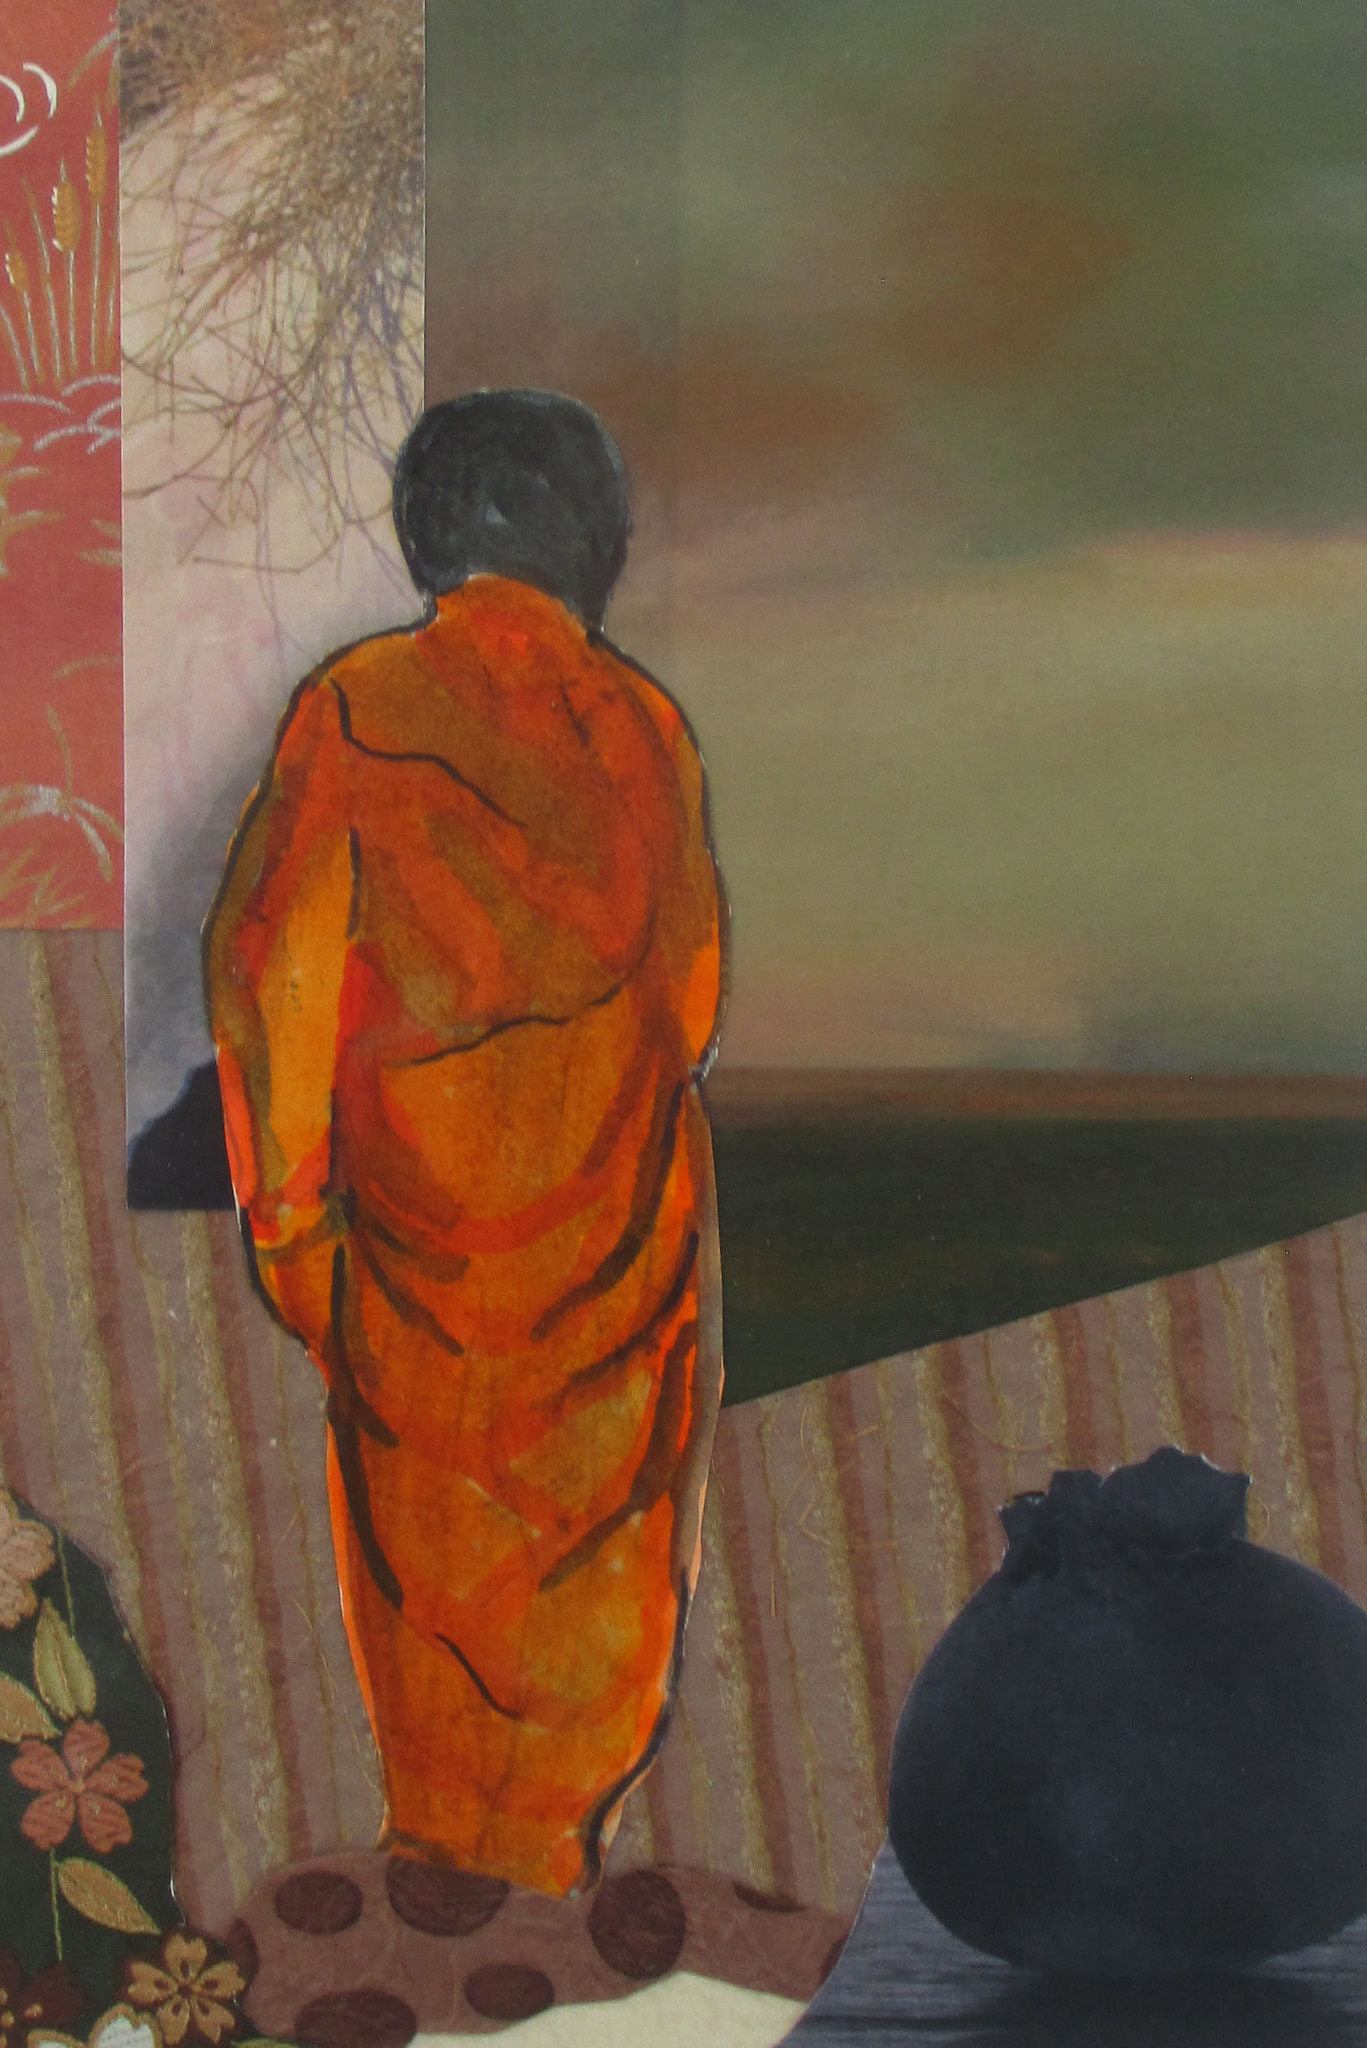 Saffron-robed Monk, watercolor, collage, 11 x 14, matted